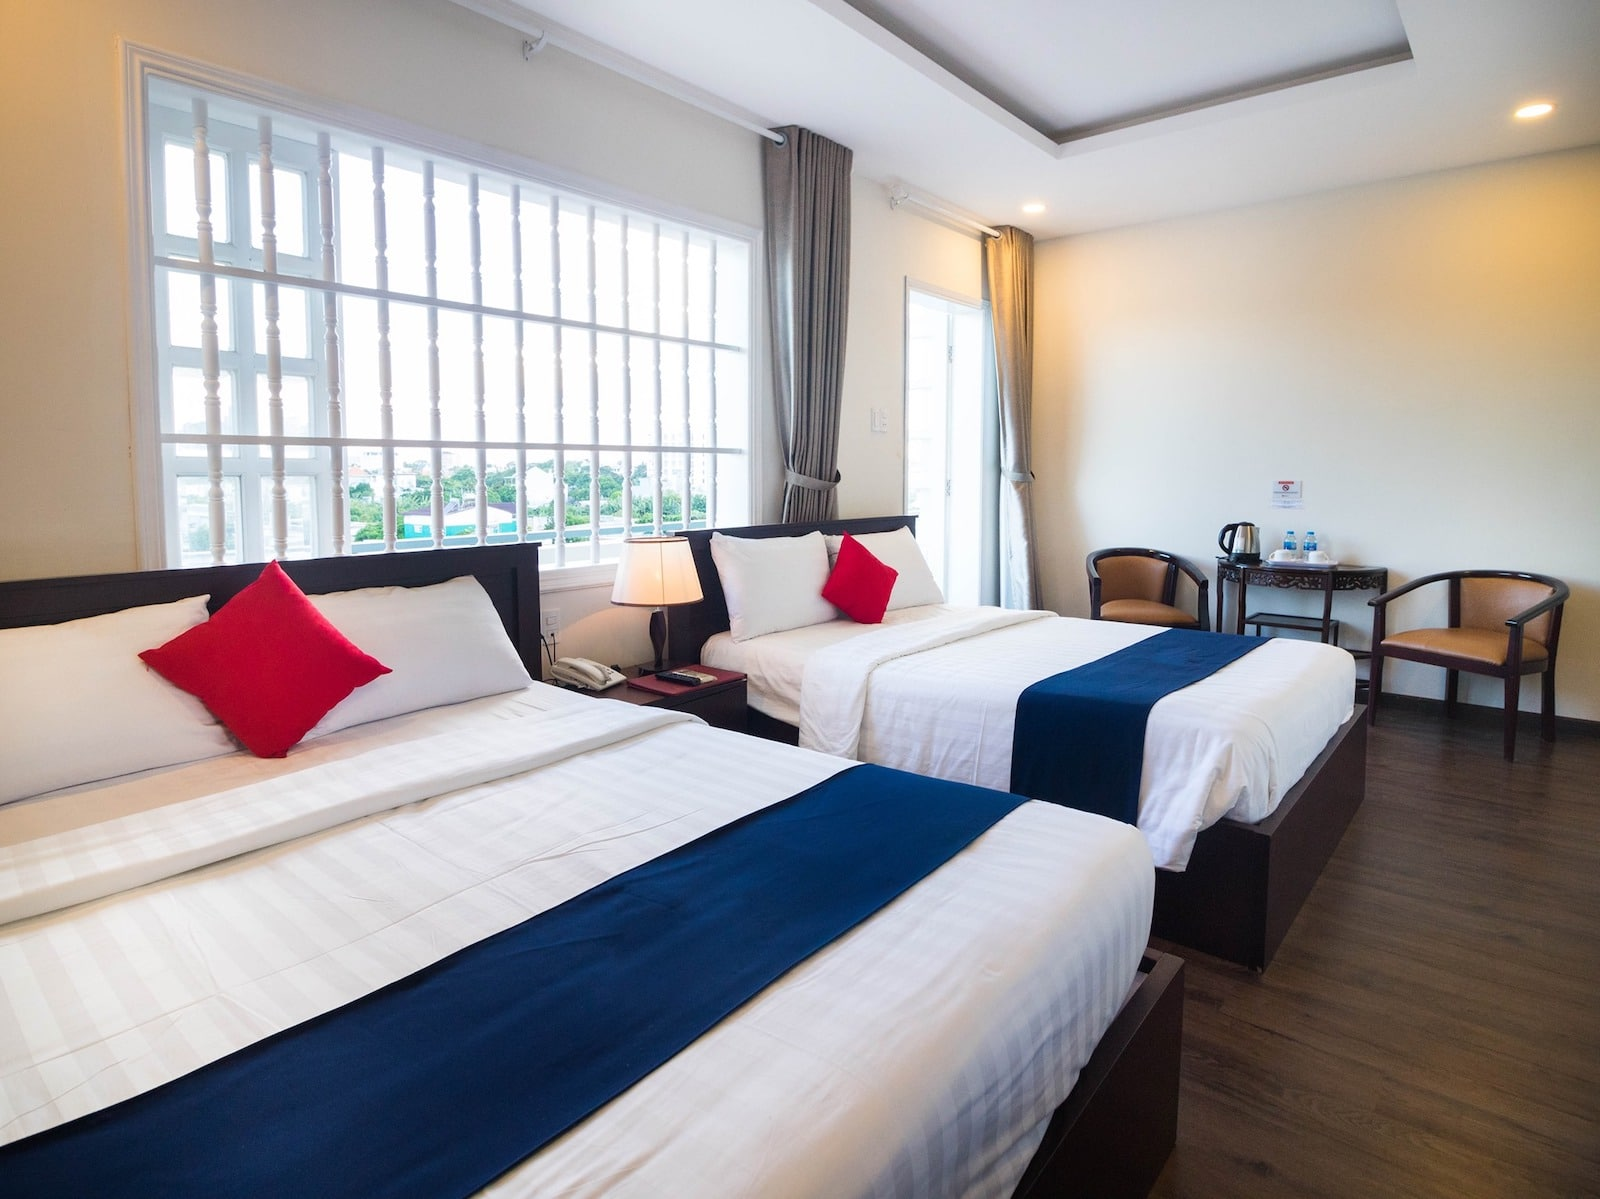 Image of the Joi Hotel double bed accommodation in Vung Tau, Vietnam